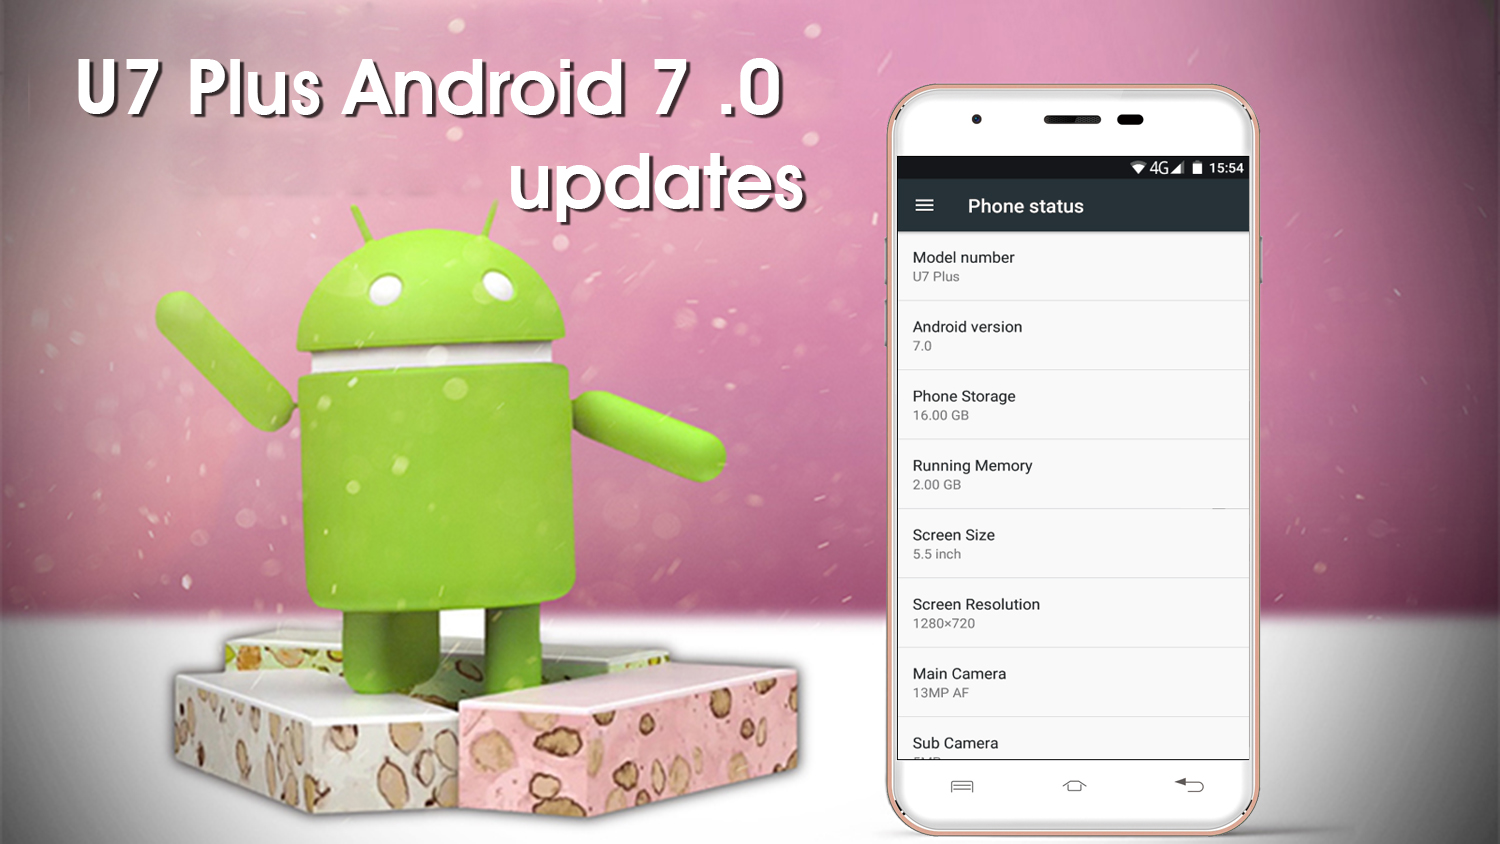 Android Android 7.0 Nougat Oukitel U7 Plus Update